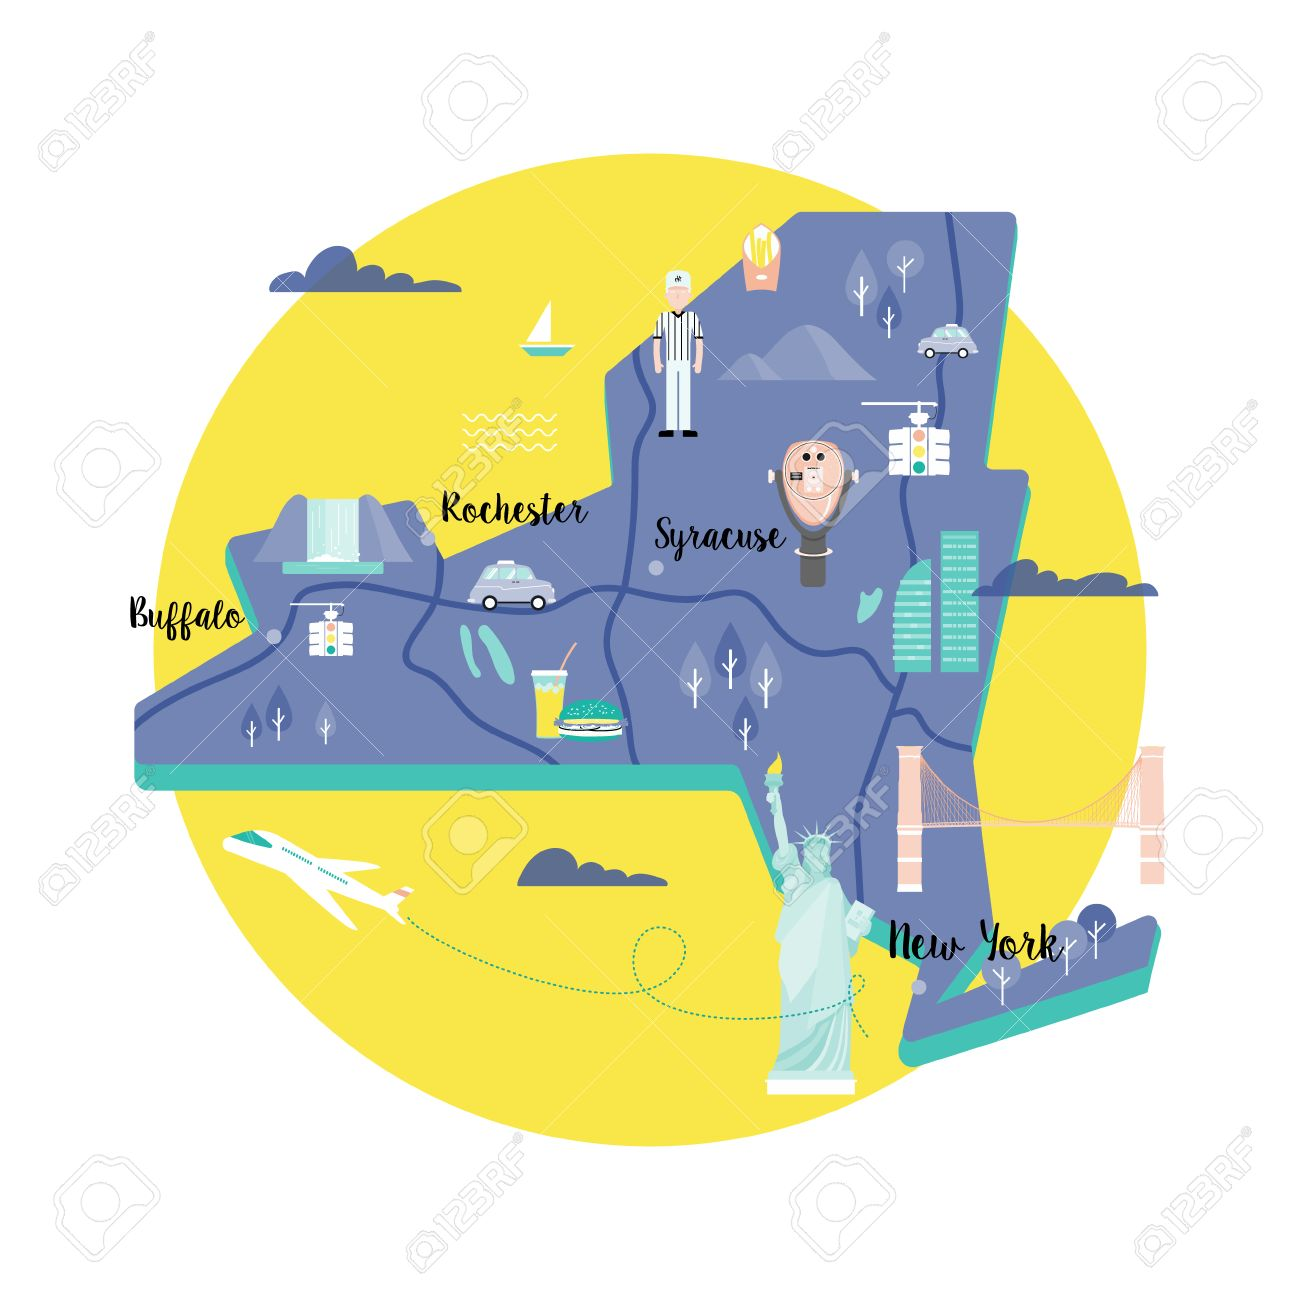 Map Of New York Landmarks.Vector Map Of New York In Retro Style With Landmarks The Statue